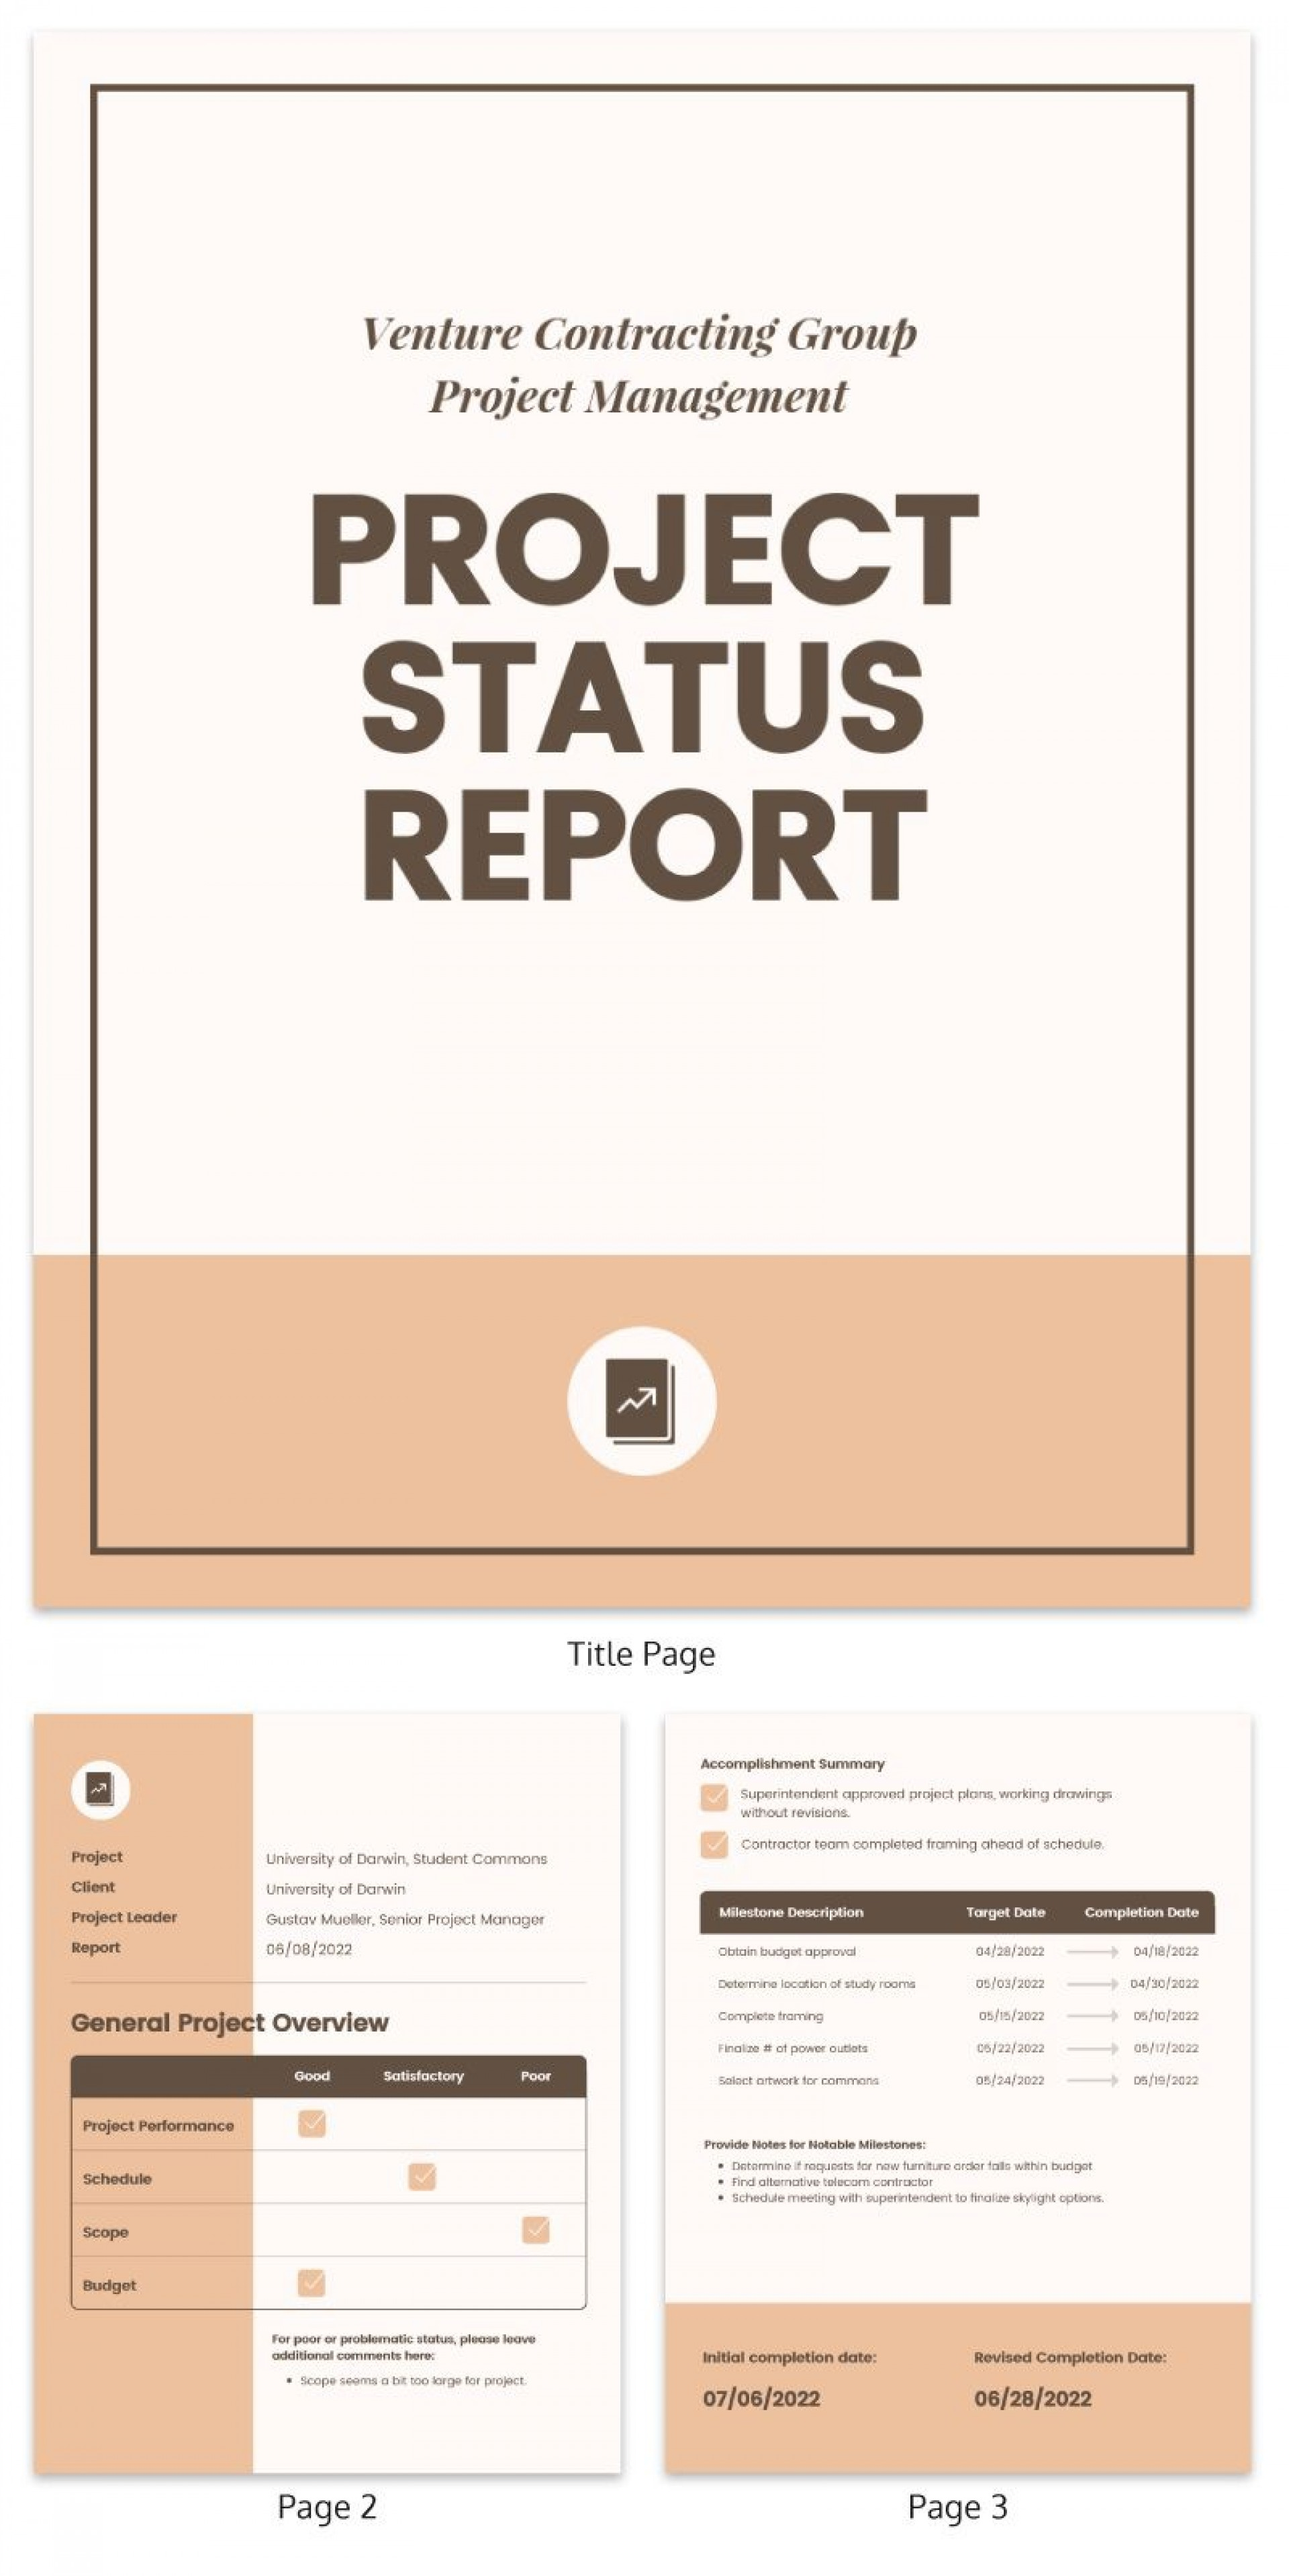 007 Top Project Management Report Template Free High Resolution  Weekly Statu1920